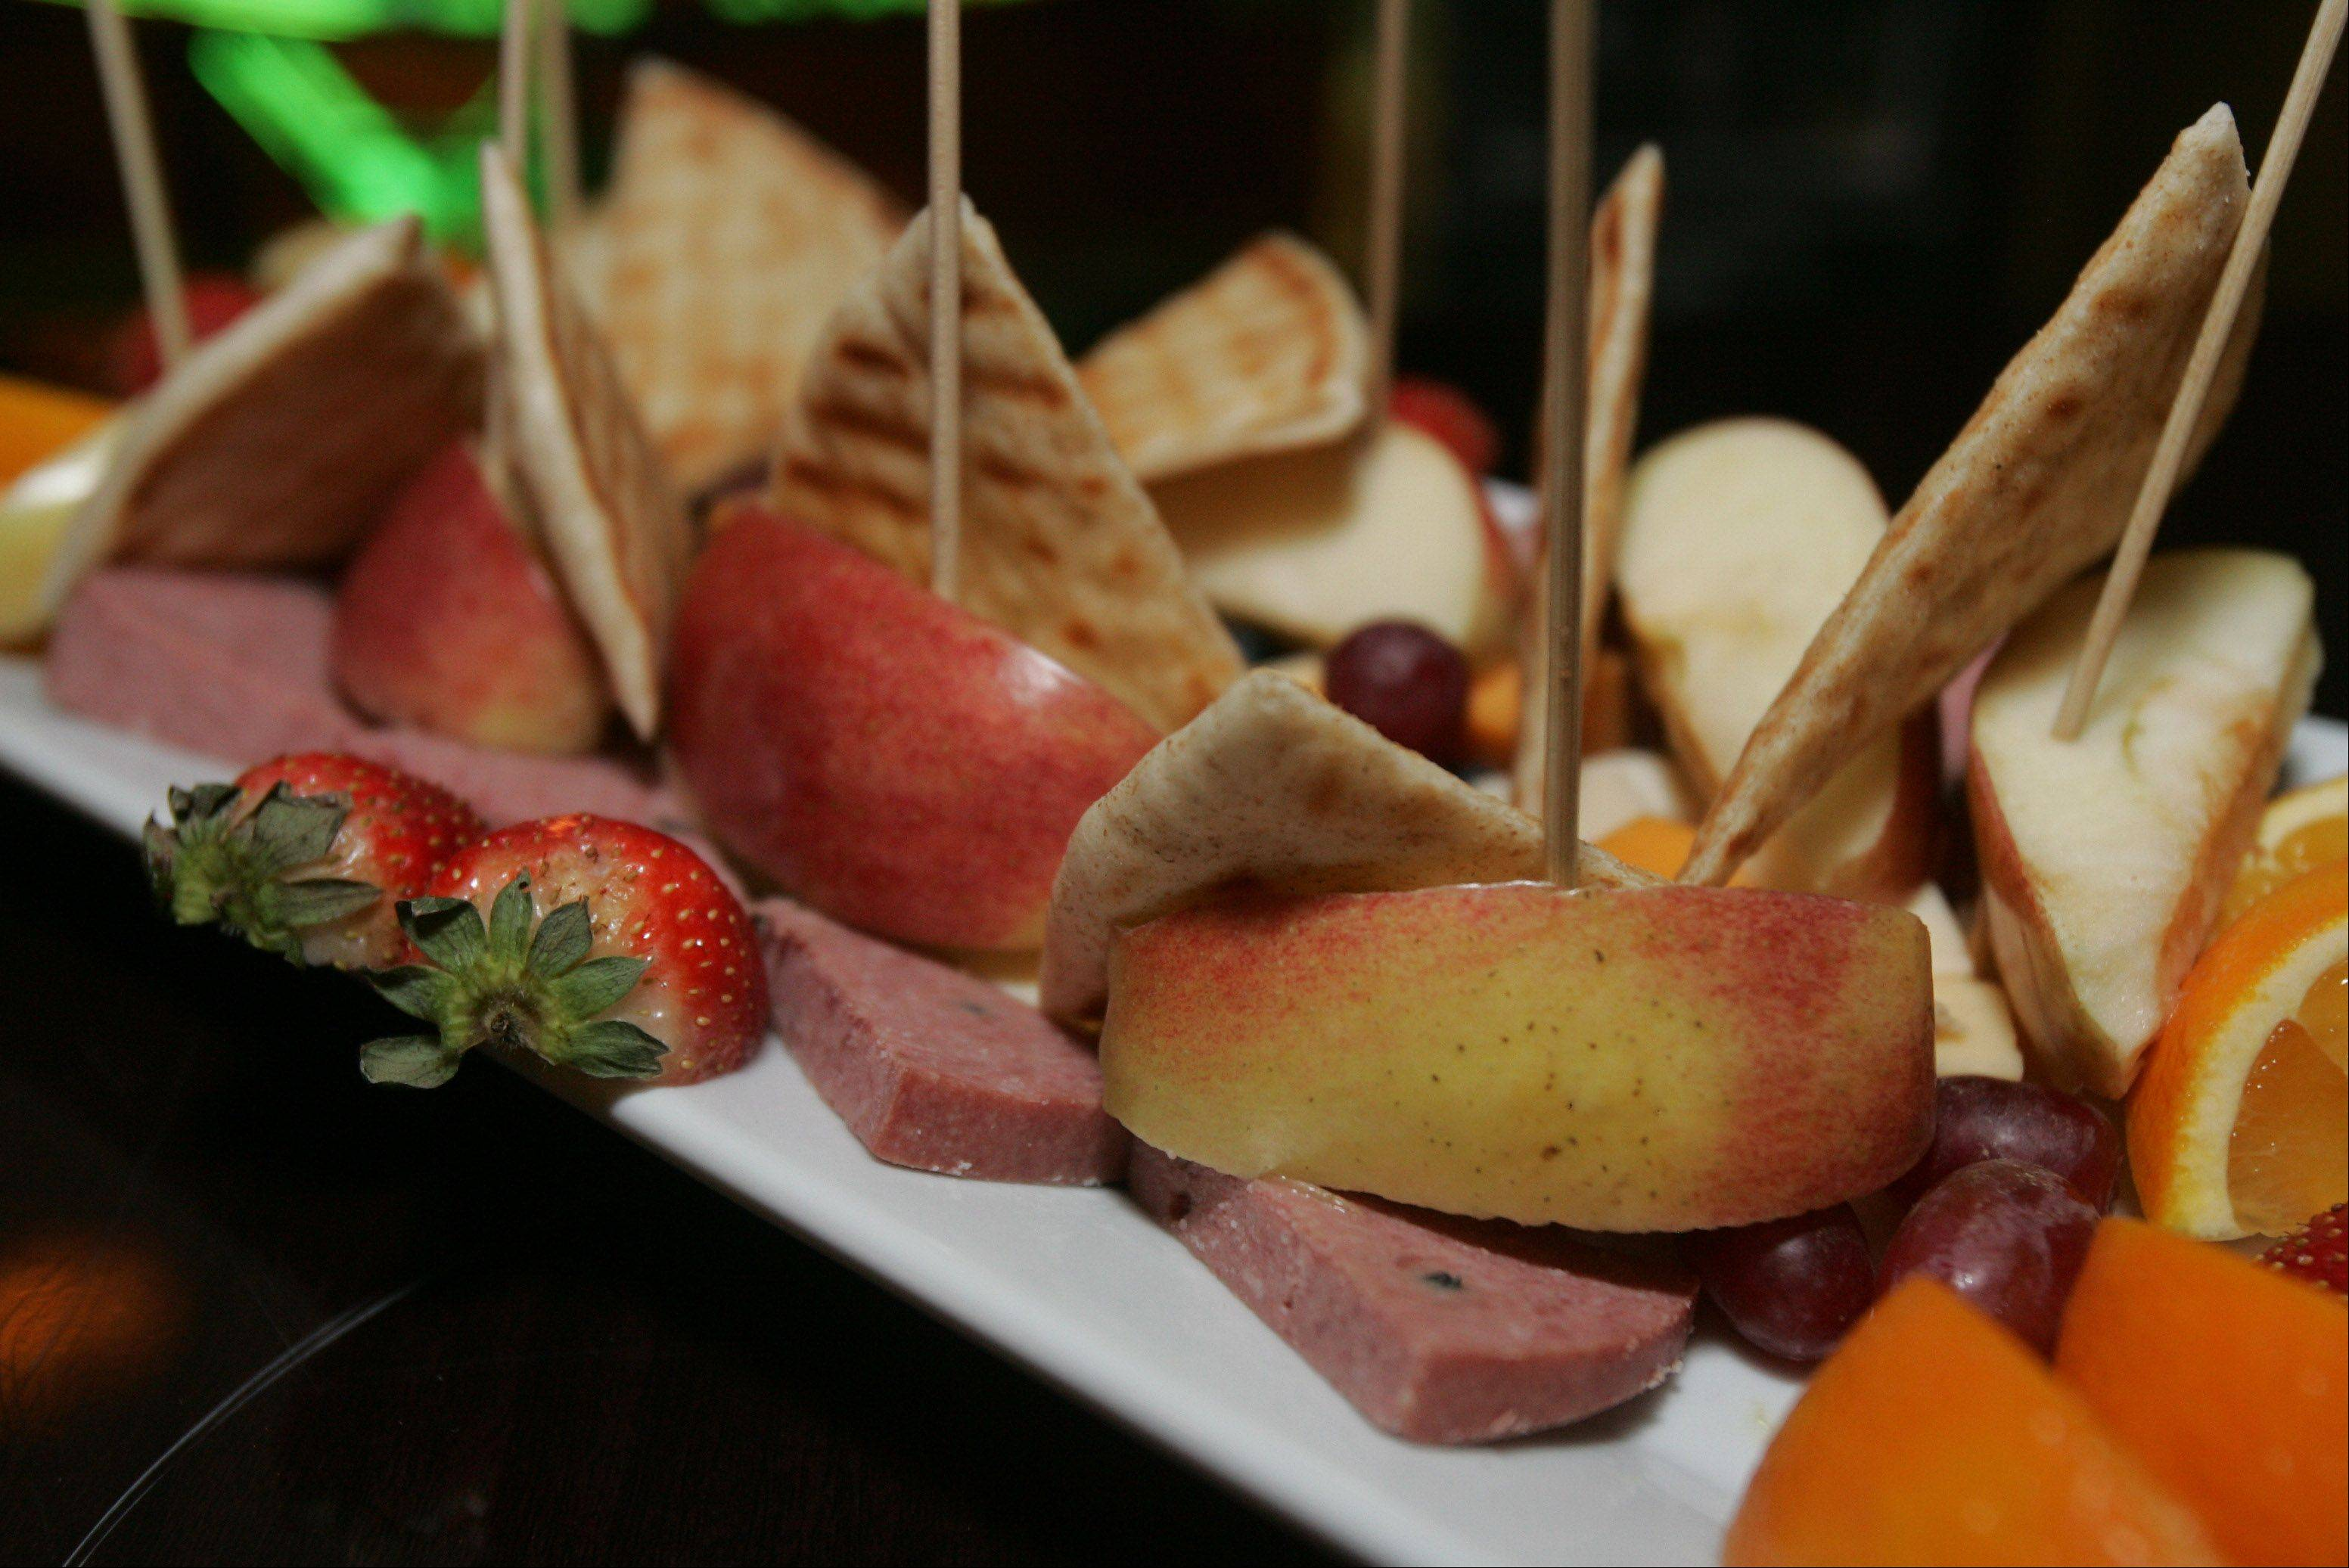 You can enjoy light snacks -- like the fruit, cheese and sausage platter -- with your drinks at Chill Martini & Wine Bar in Lake Villa.